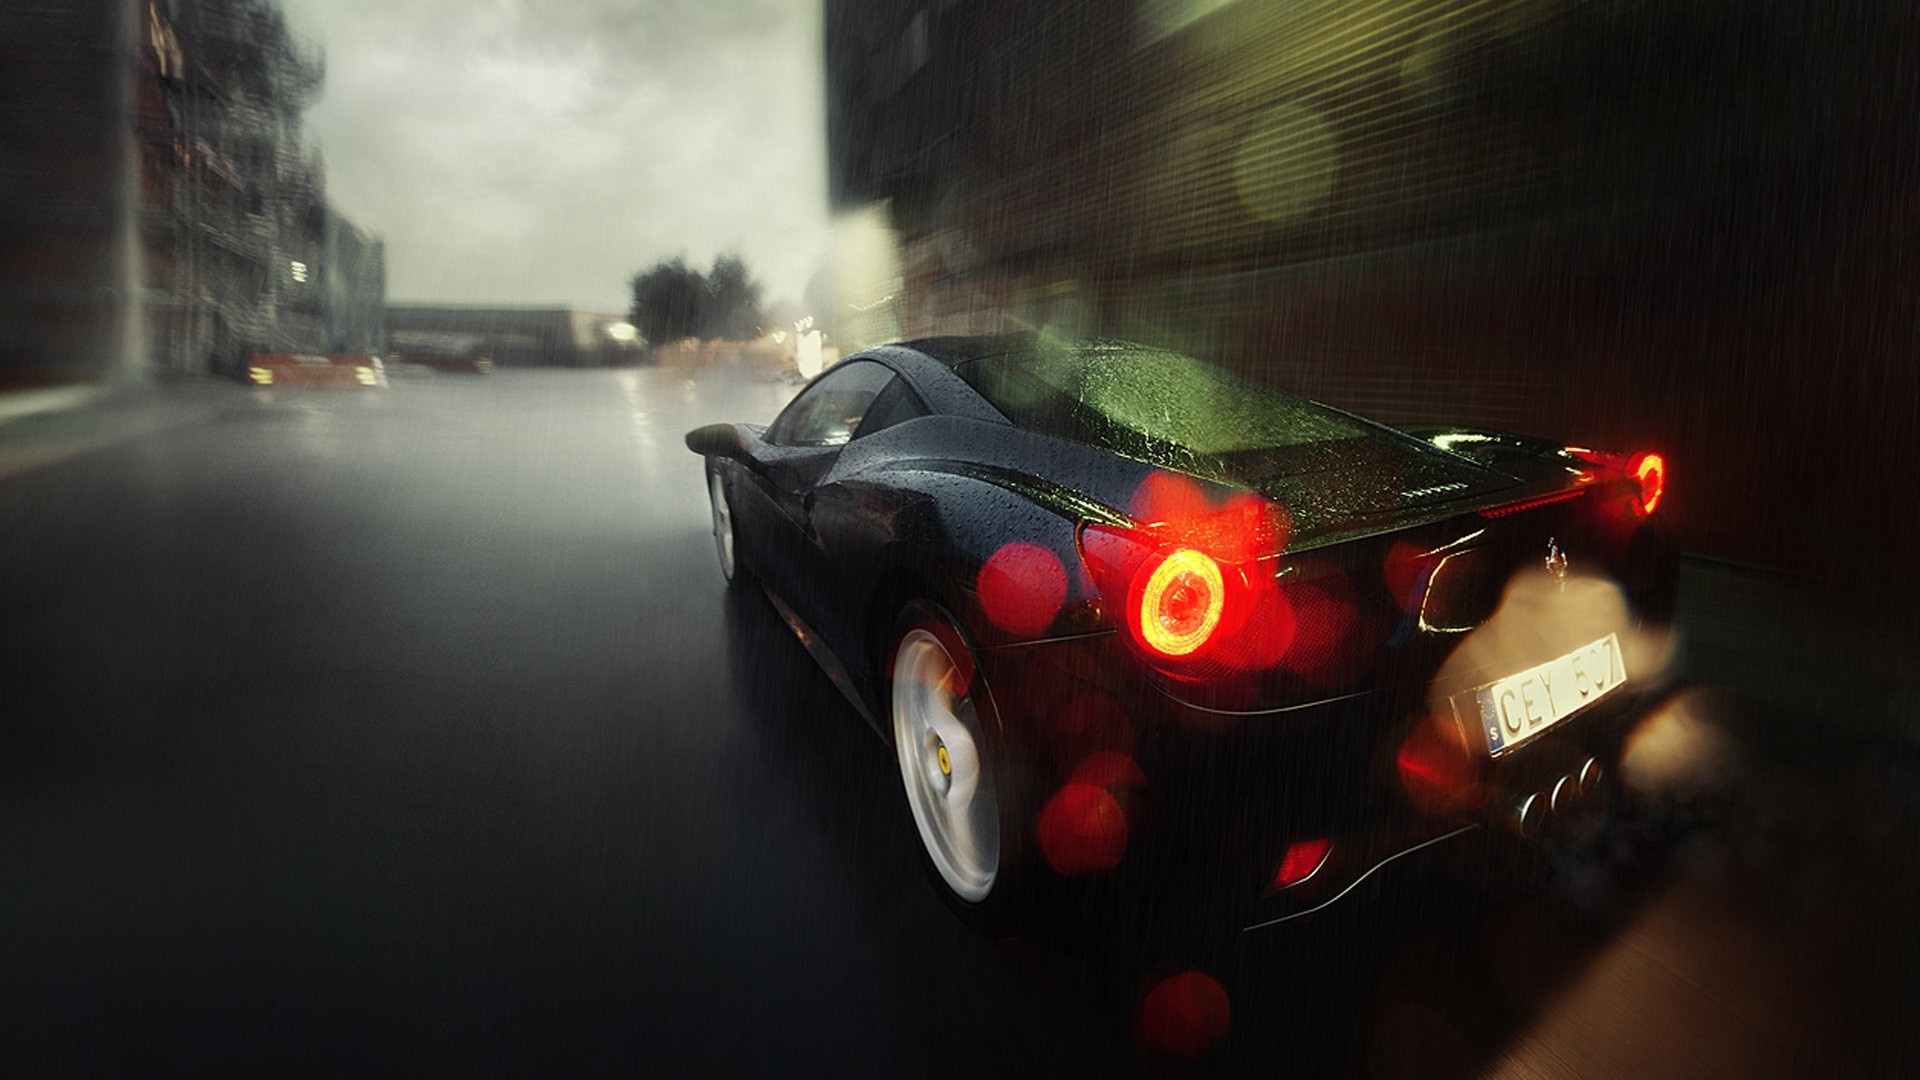 ferrari 458 italia rain HD Wallpaper